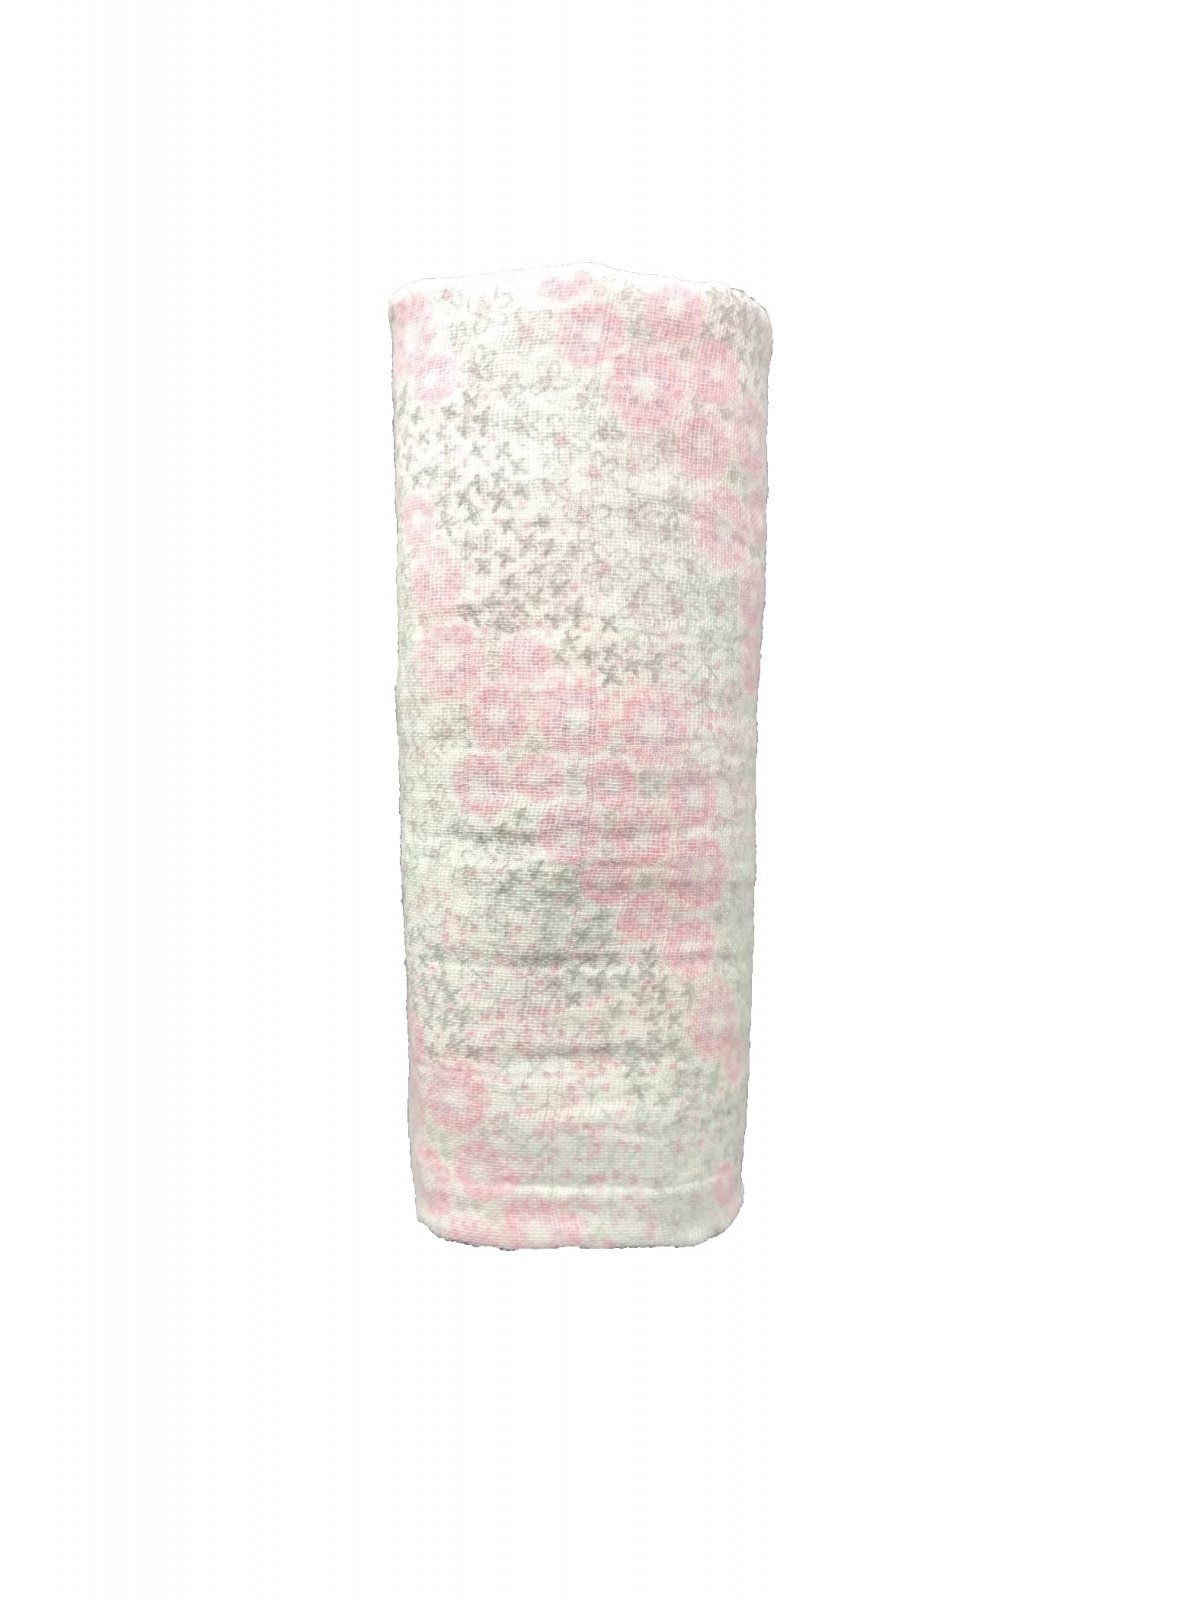 Pretty in Floral Blush Swaddle